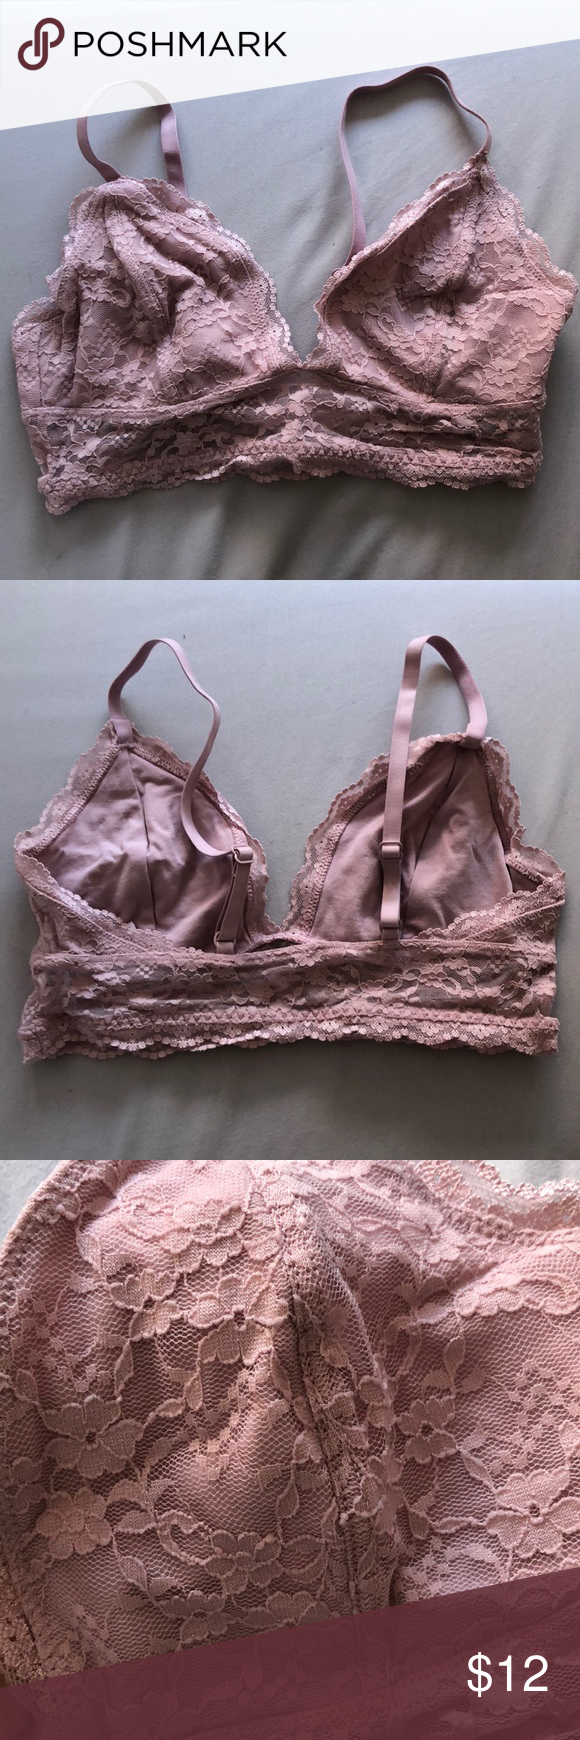 d42077f7c344c9 Spotted while shopping on Poshmark  Pink lace bralette✨!  poshmark  fashion